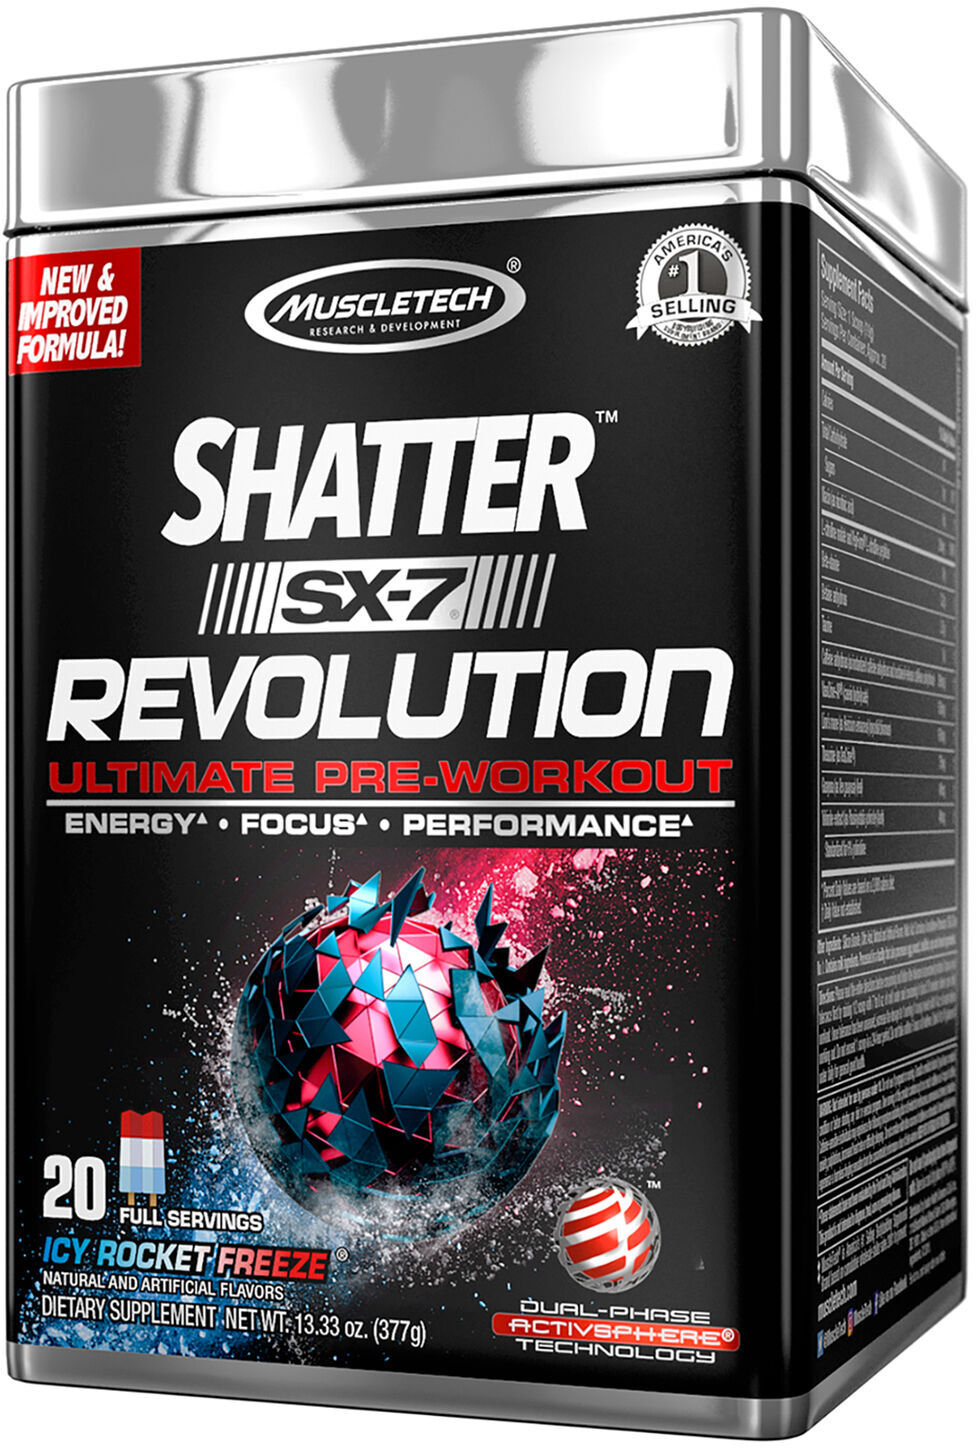 Muscletech Shatter Sx 7 Revolution Save At Priceplow